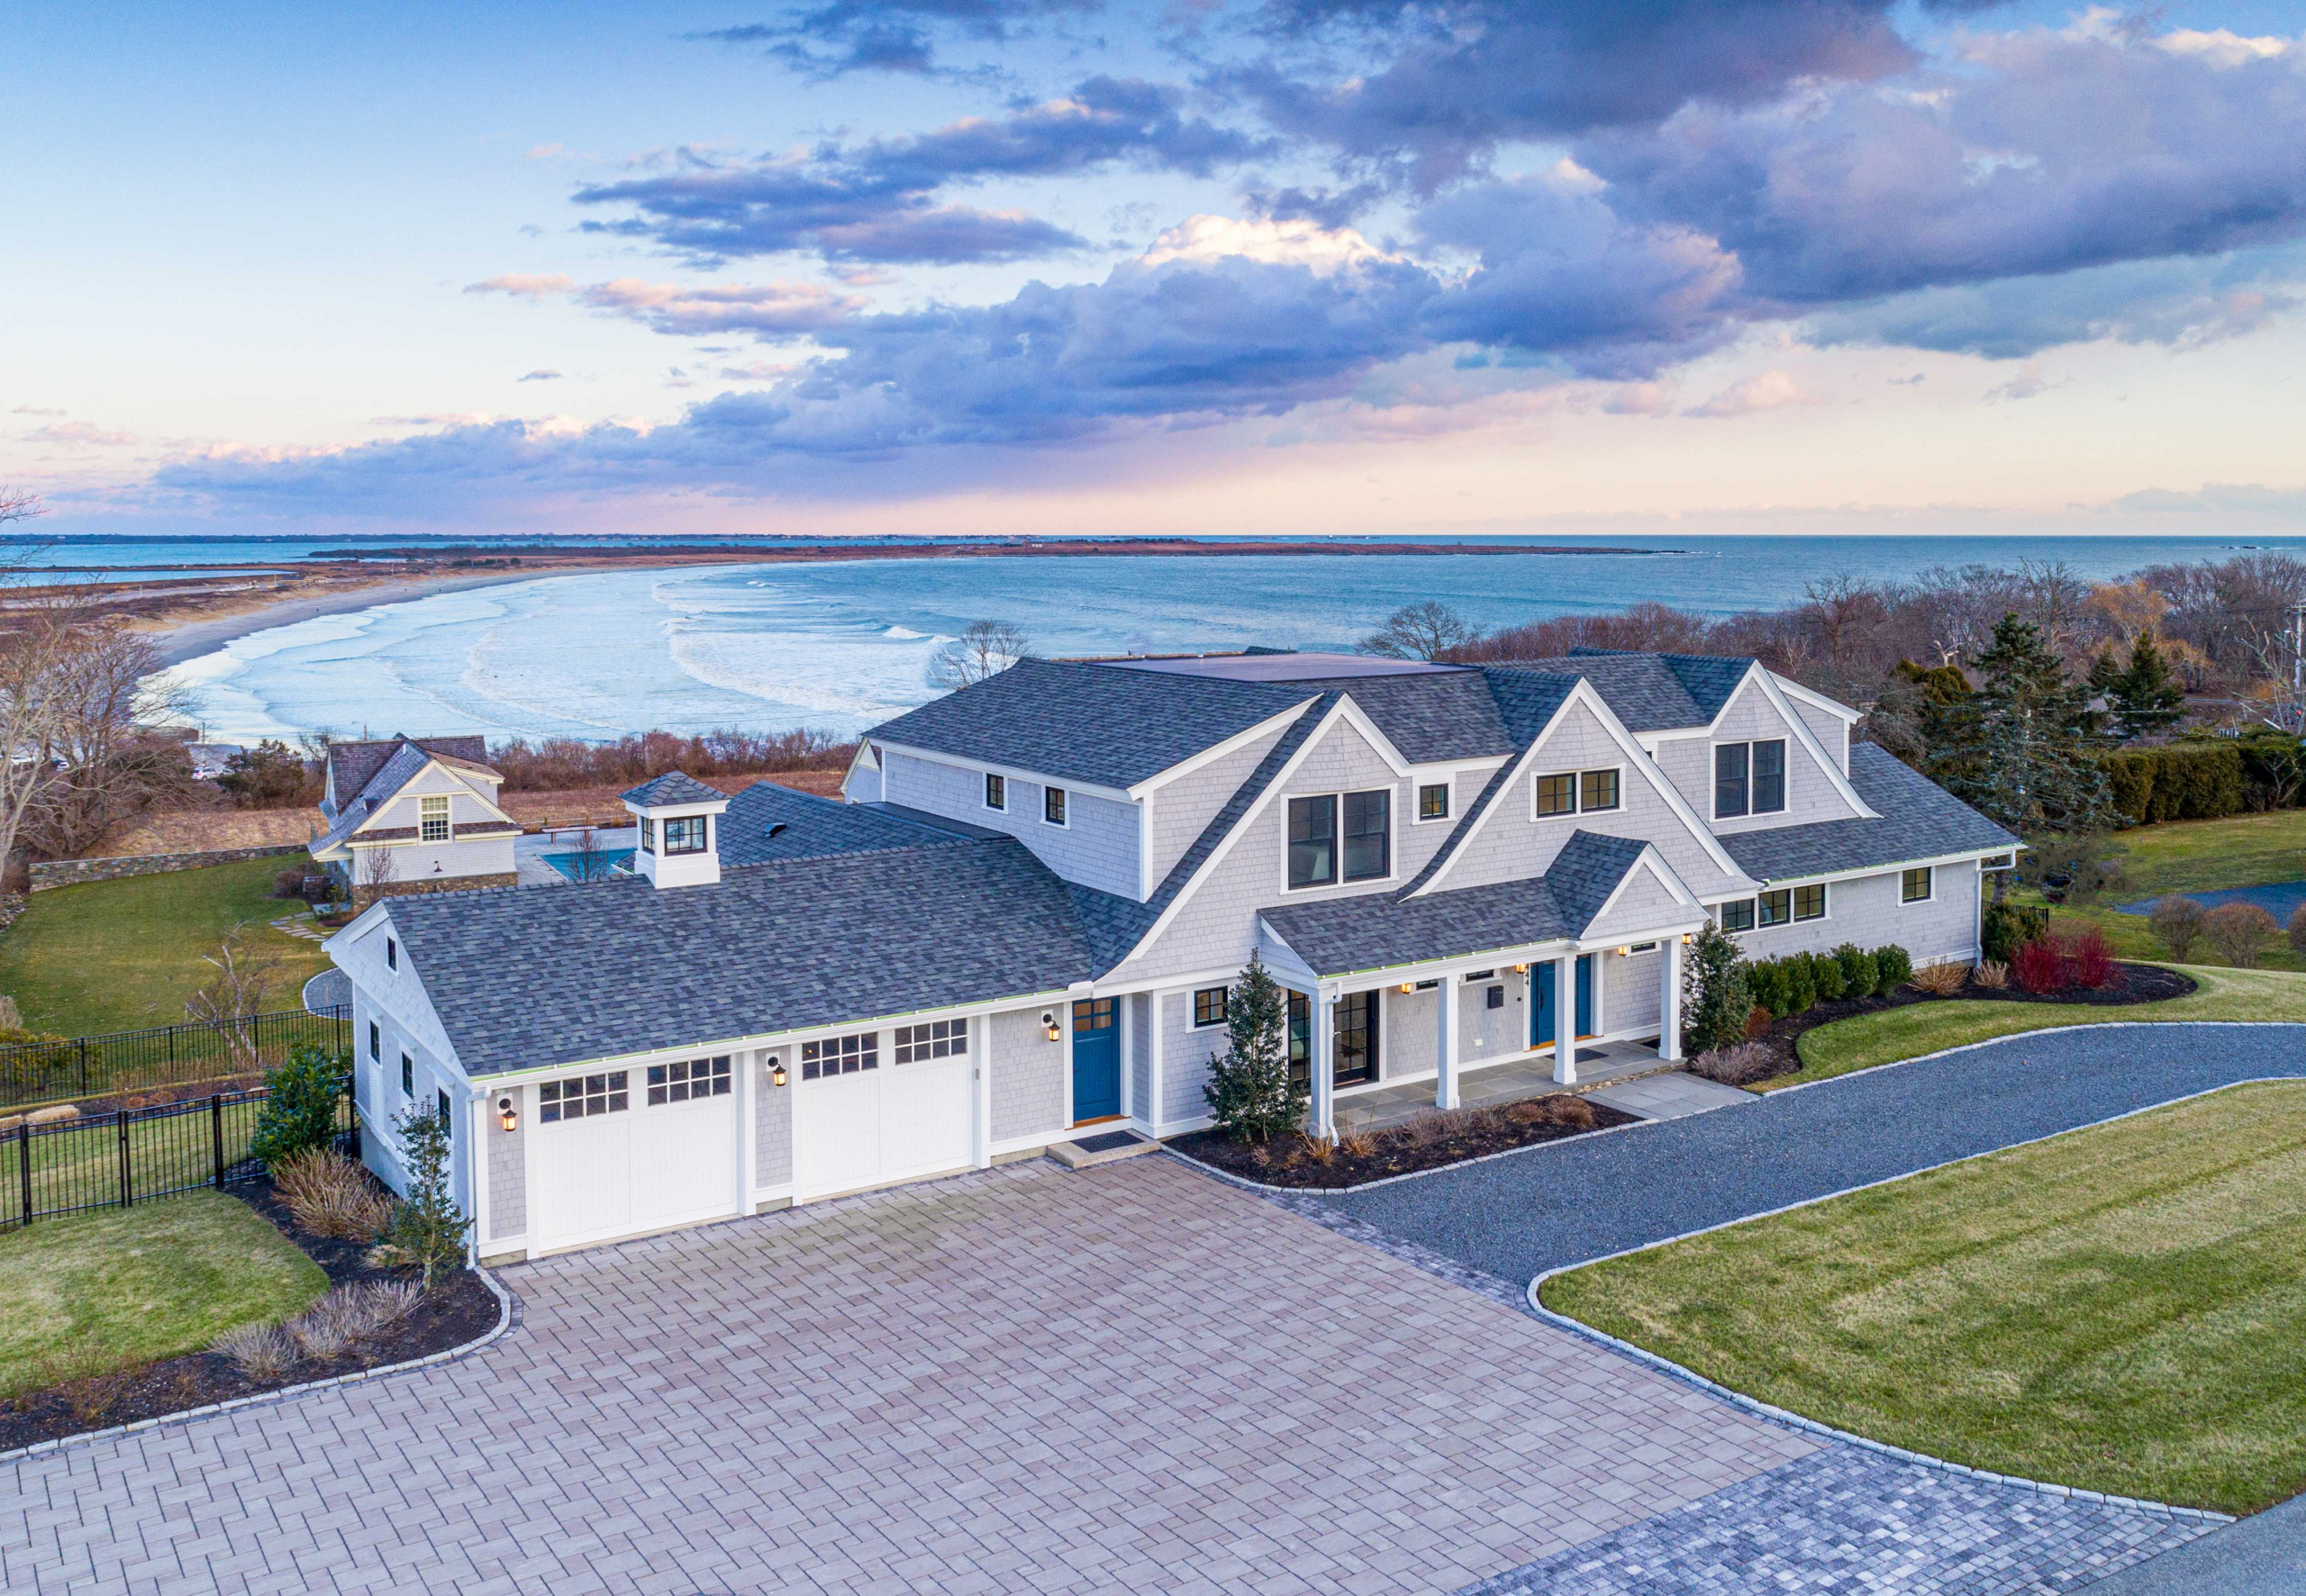 MODERN PURGATORY LANE HOME SELLS ABOVE ASKING PRICE AT $3.6M, MARKING THE HIGHEST RESIDENTIAL SALE IN MIDDLETOWN SINCE AUGUST 2018*